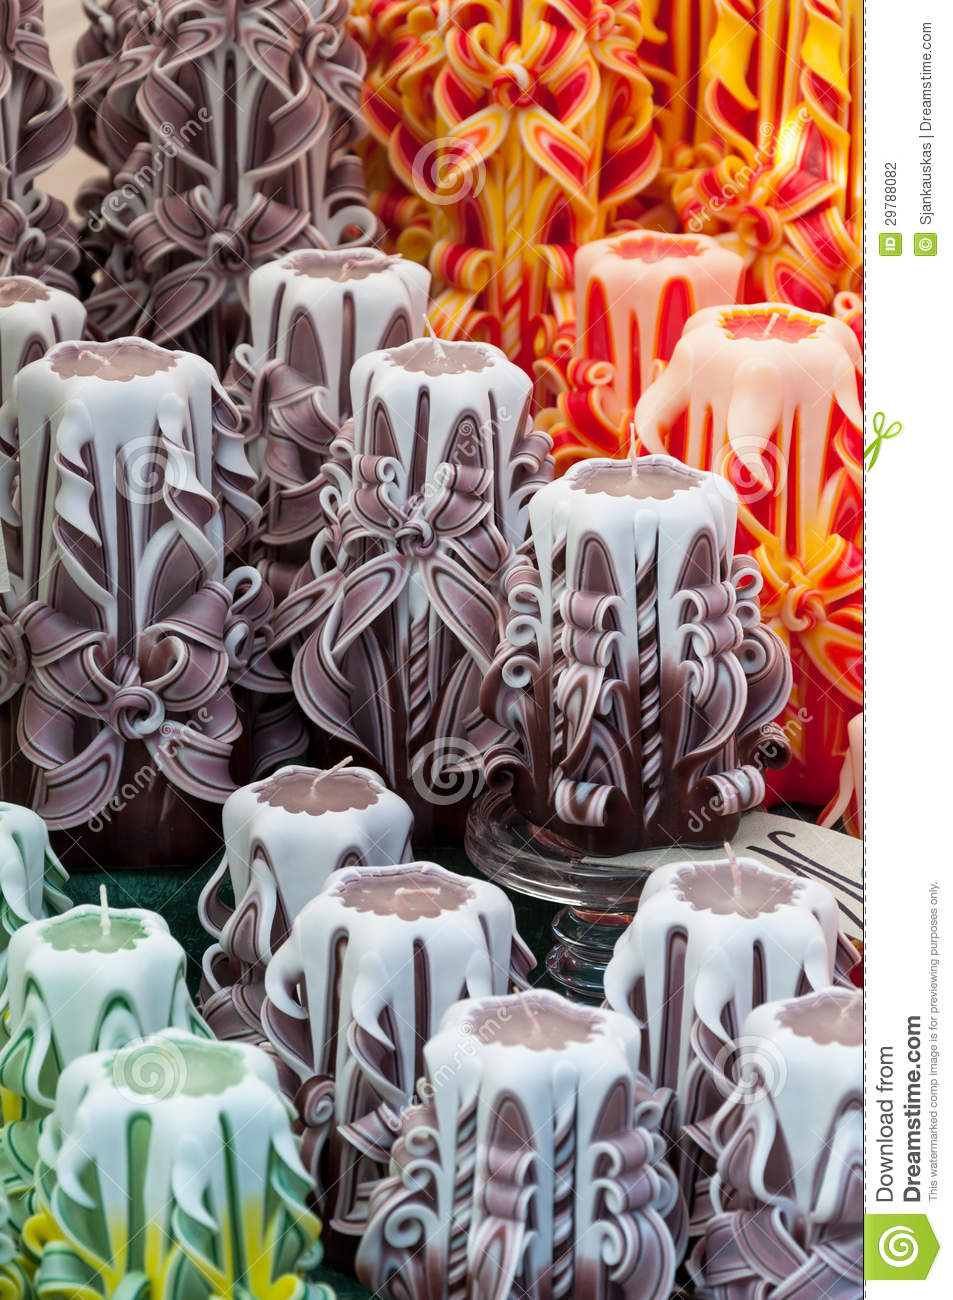 Decorative candles stock photo image of craftsmanship for Homemade crafts for sale